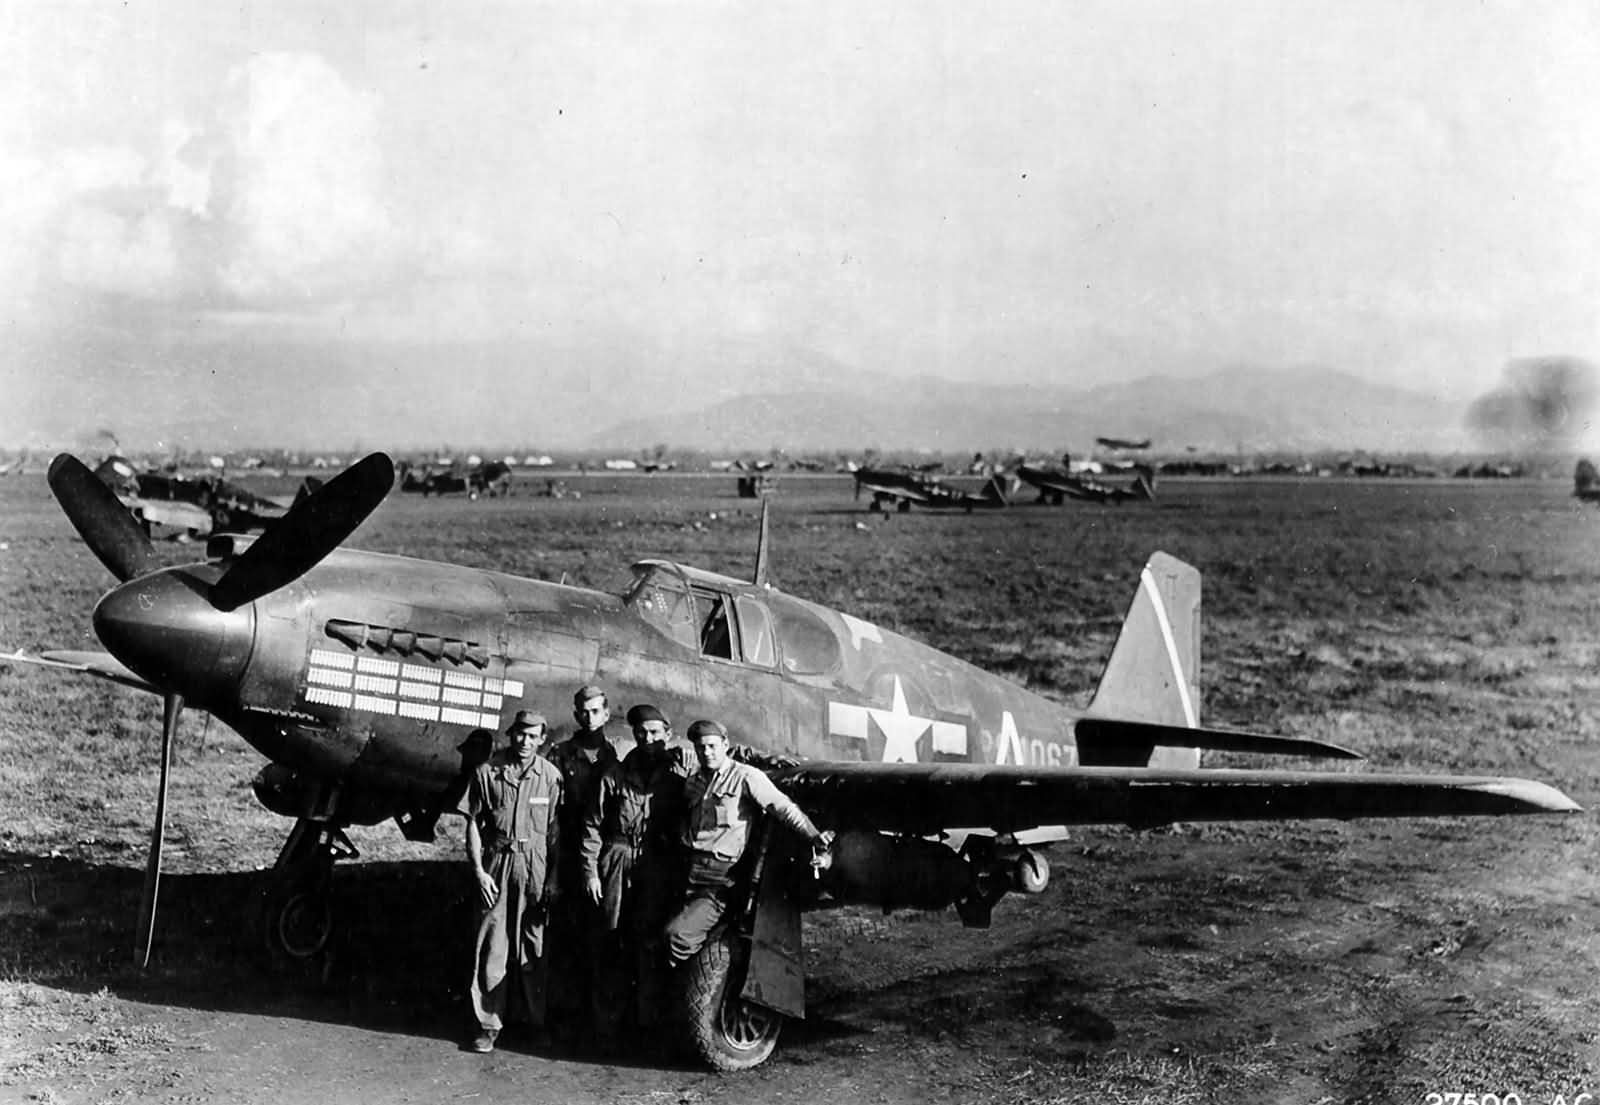 The ground crew of A-36A 42-84067 527th Fighter-Bomber Squadron 86th Fighter Bomber Group